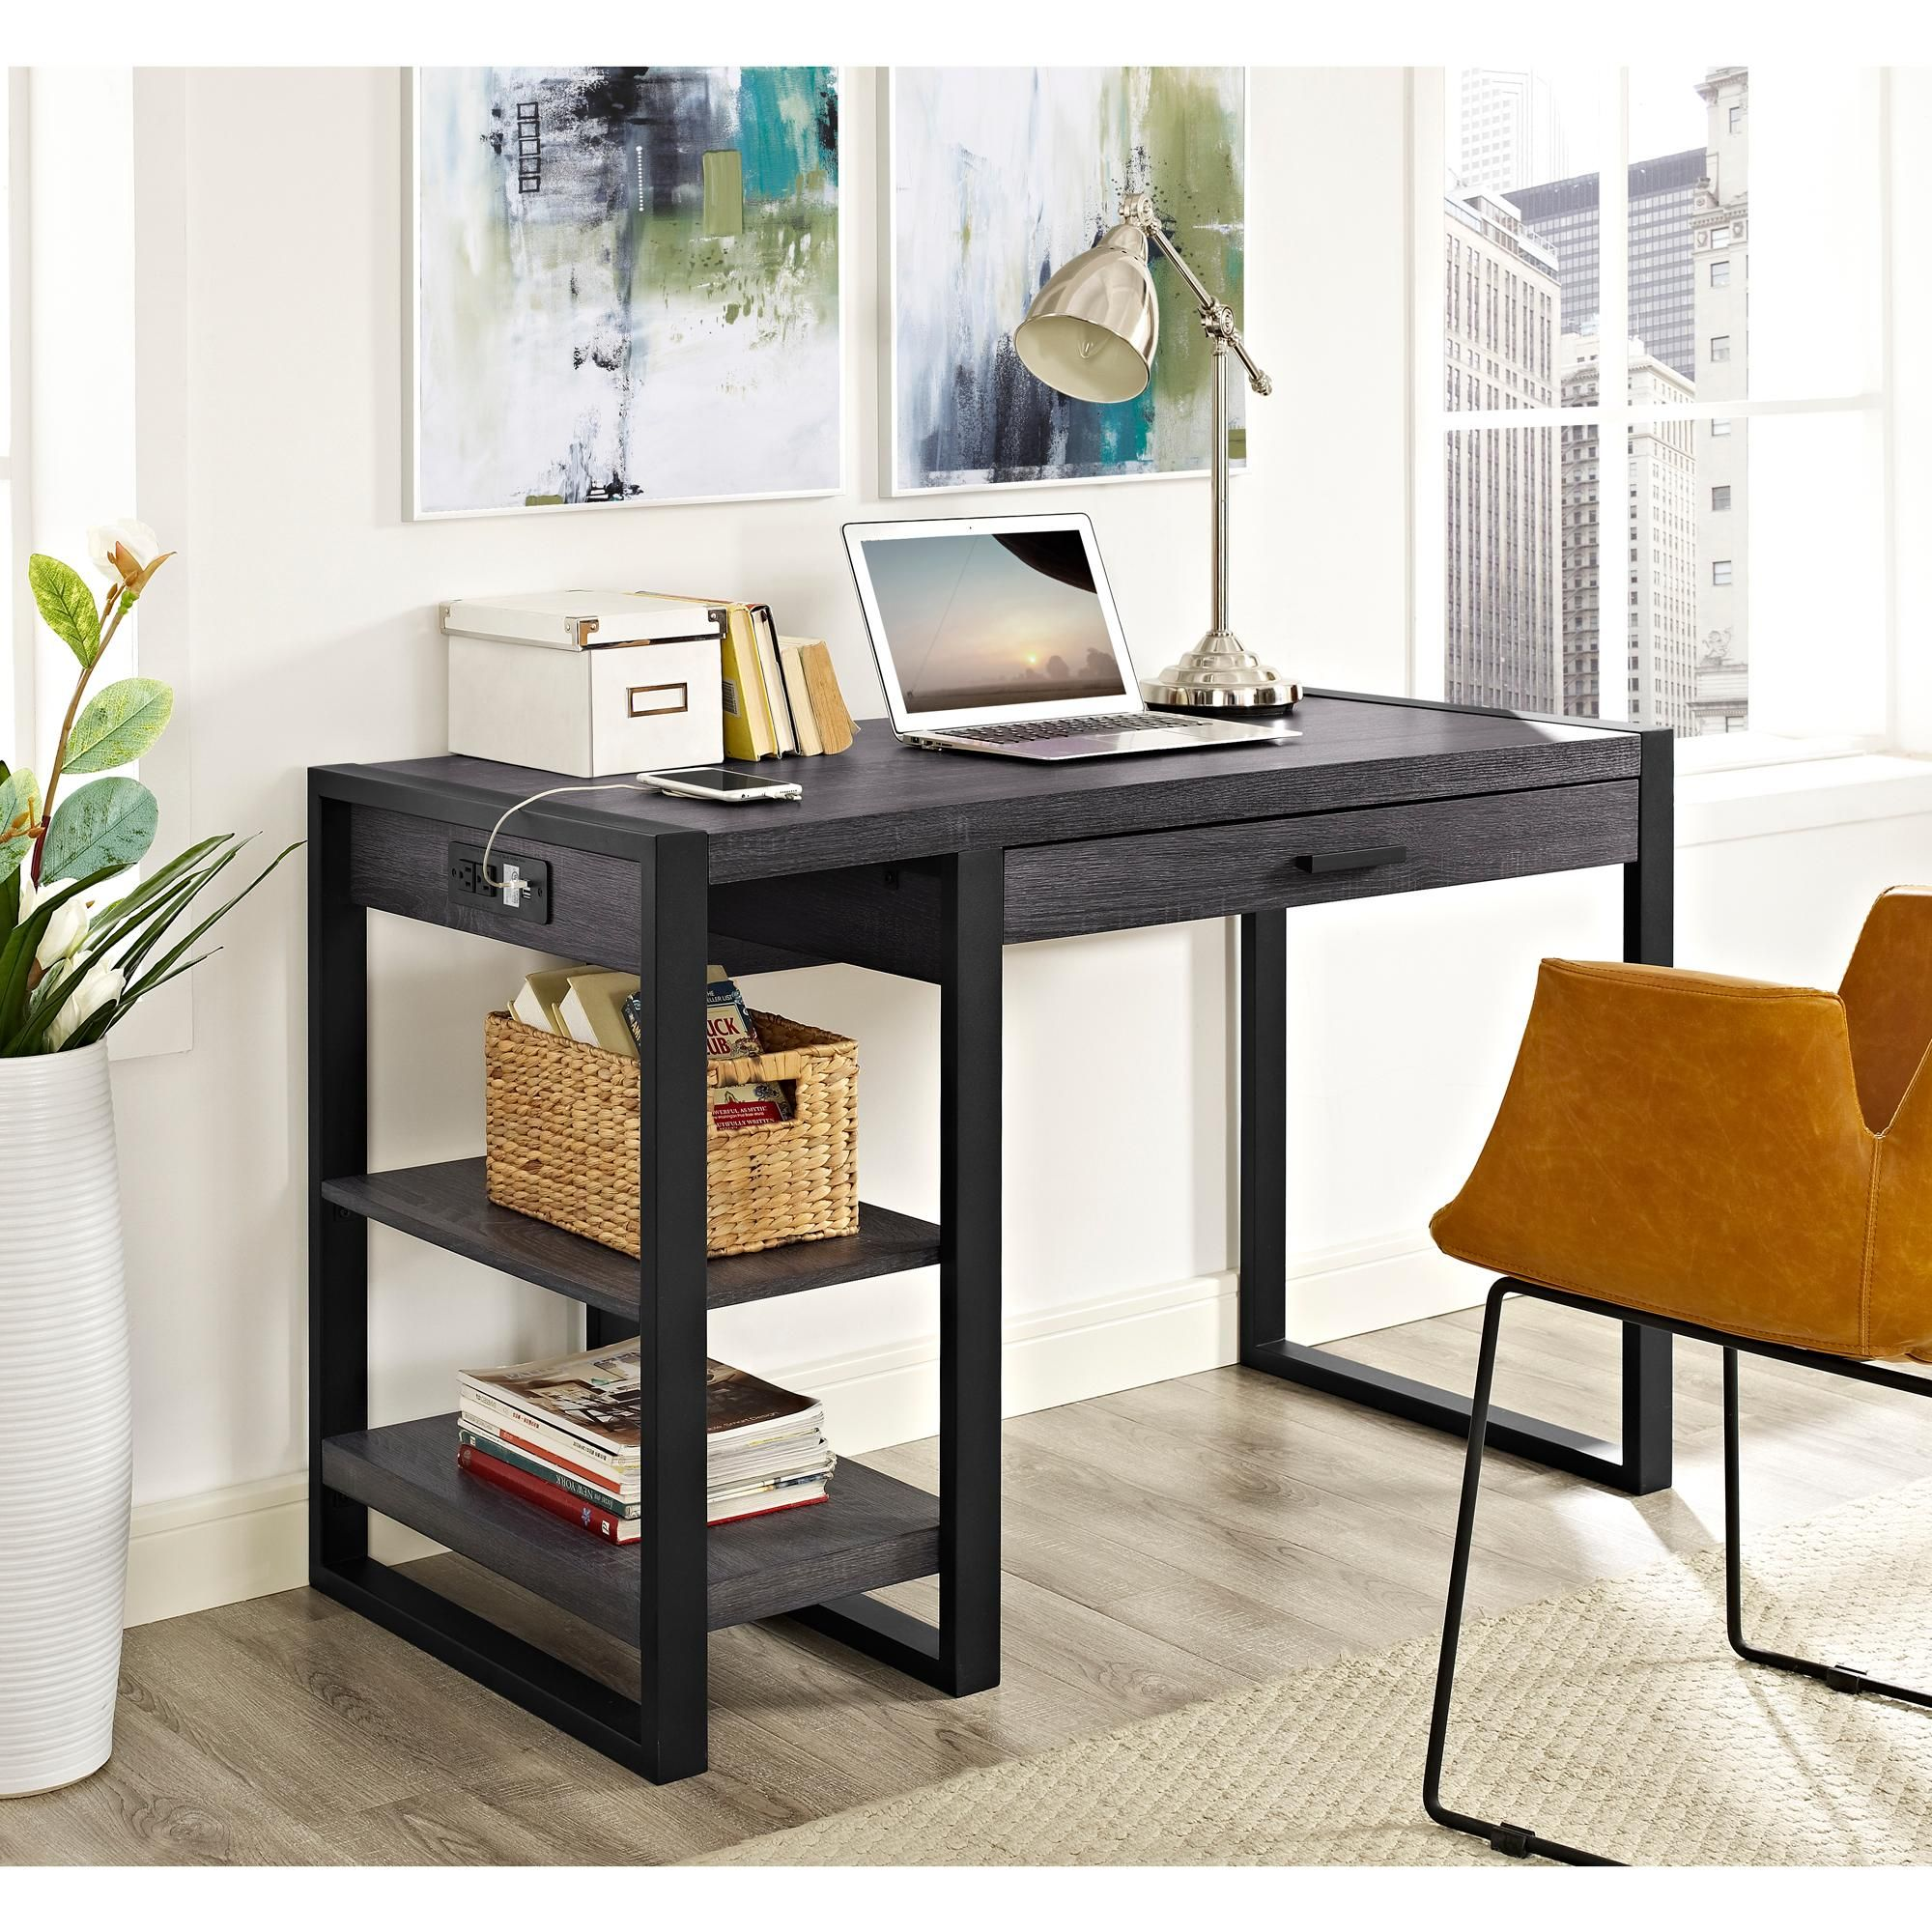 winsome amazon writing wood loaf desks com dining honey kitchen phineas at wooden with desk